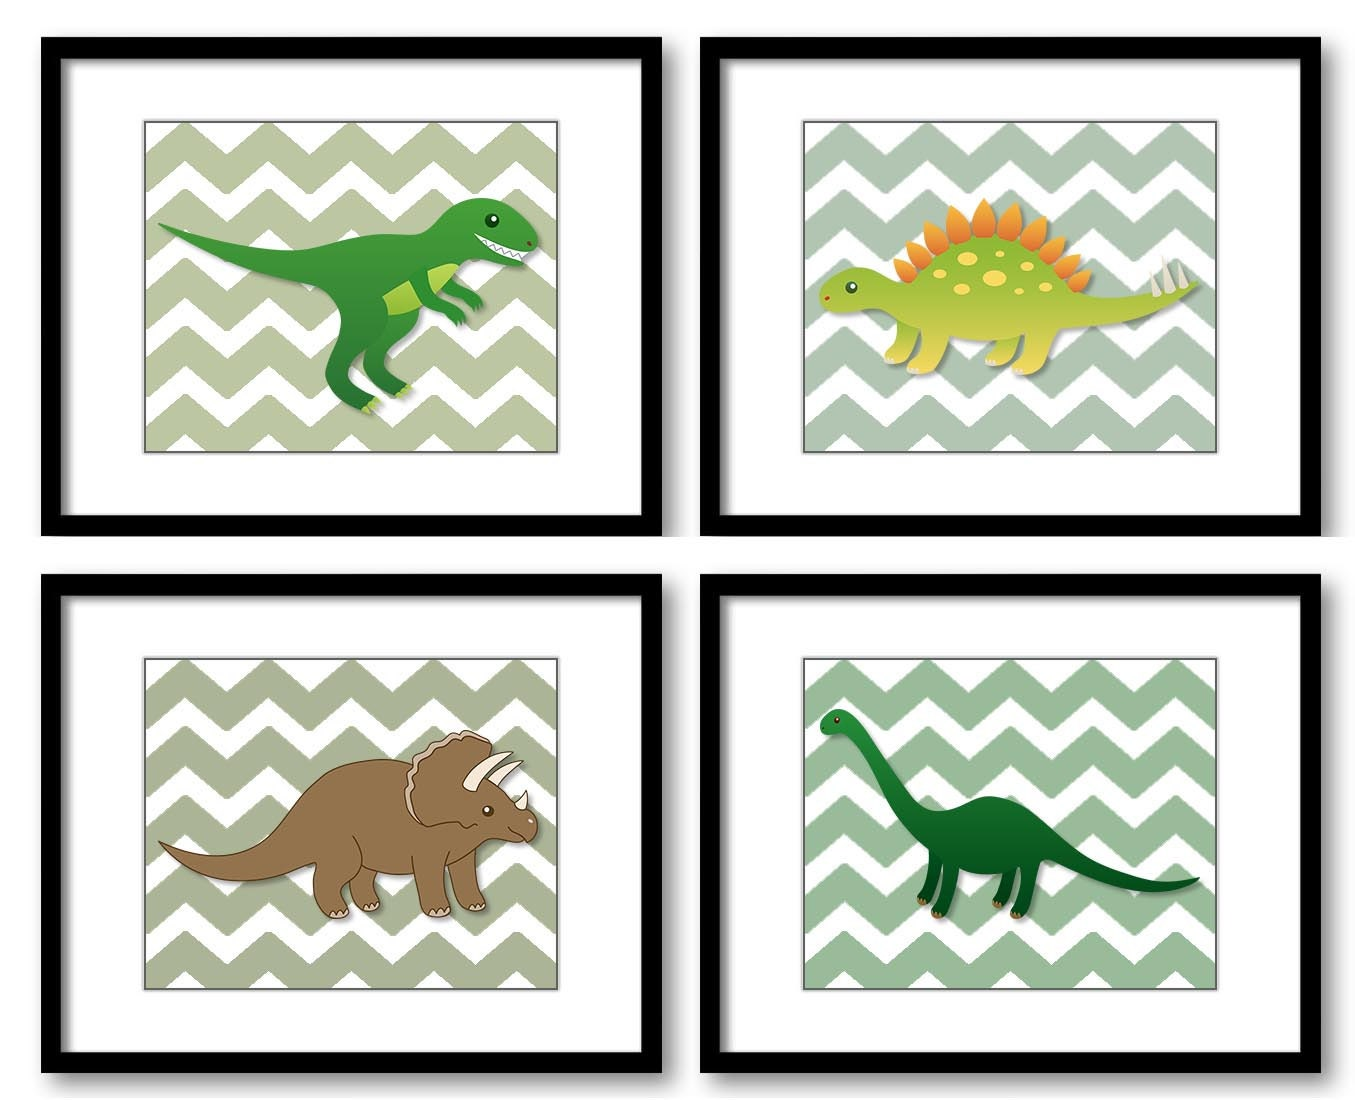 Dinosaur Green Brown Nursery Art Set of 4 Chevron Child Print Kid Room Wall Decor Boy Brontosaurus T